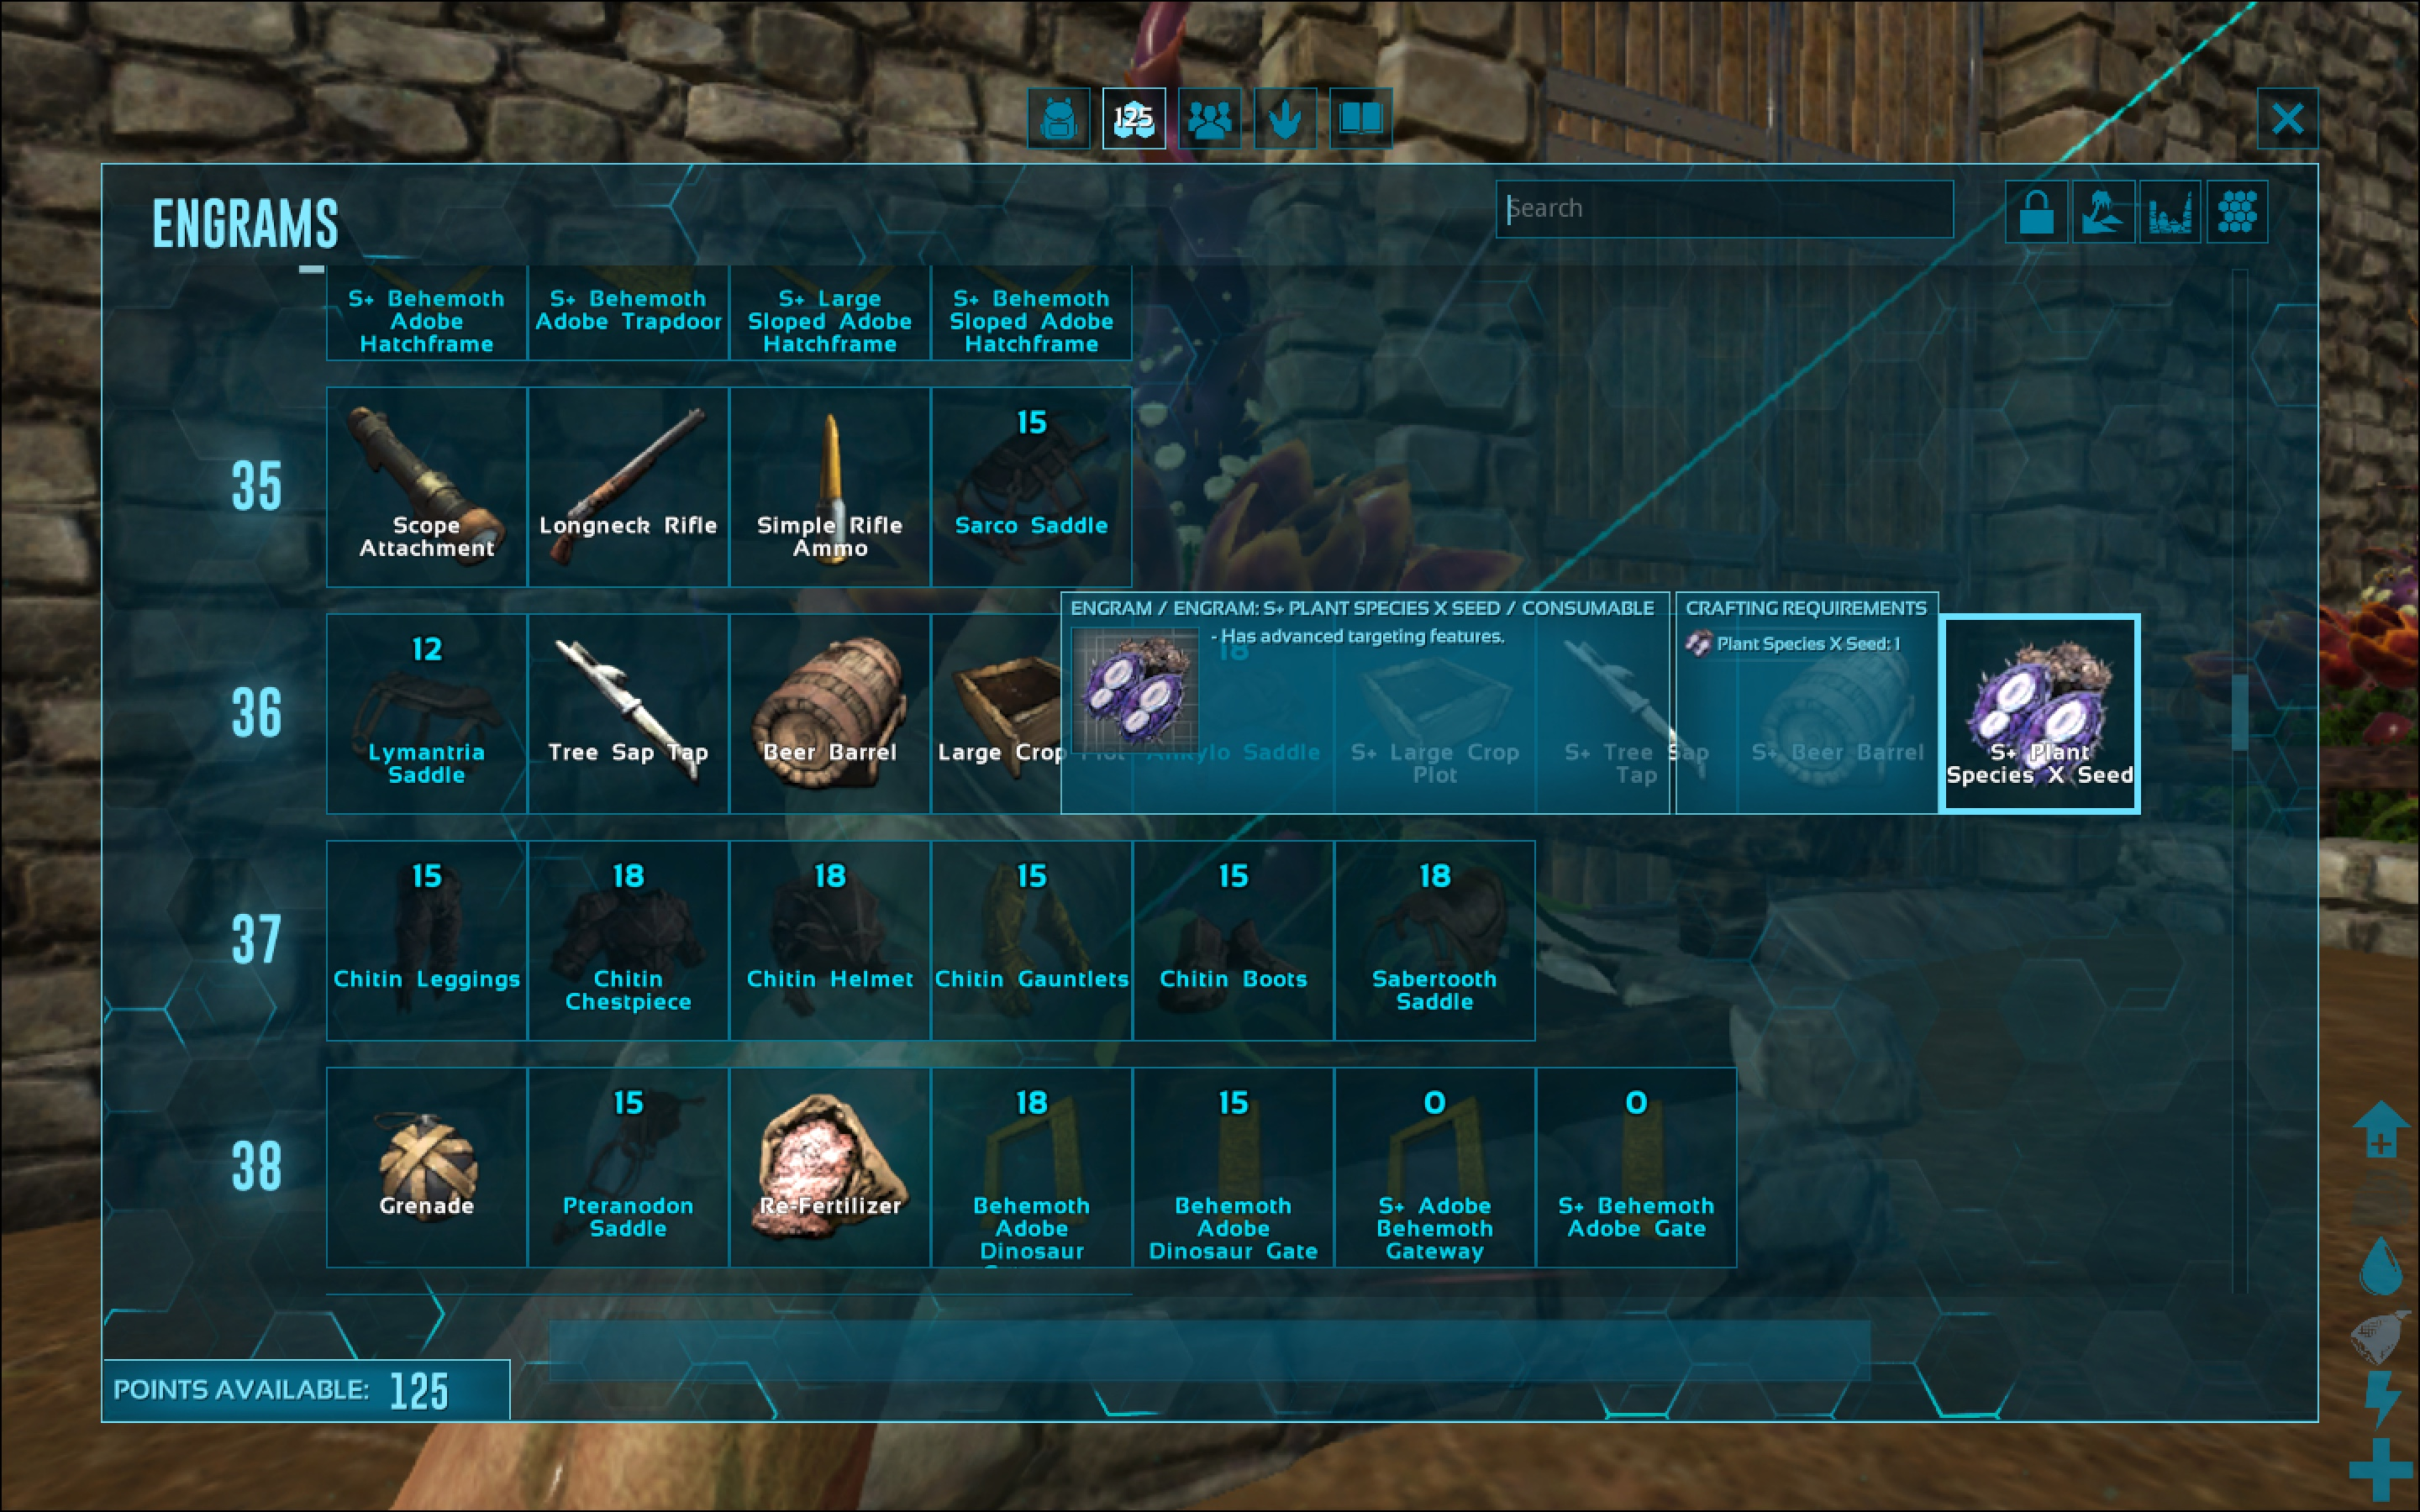 Steam community guide how to make s plant species x seeds species x seed engram which costs 0 engram points to learn and has no prerequisites you will need this engram in order to convert your seeds at all malvernweather Image collections